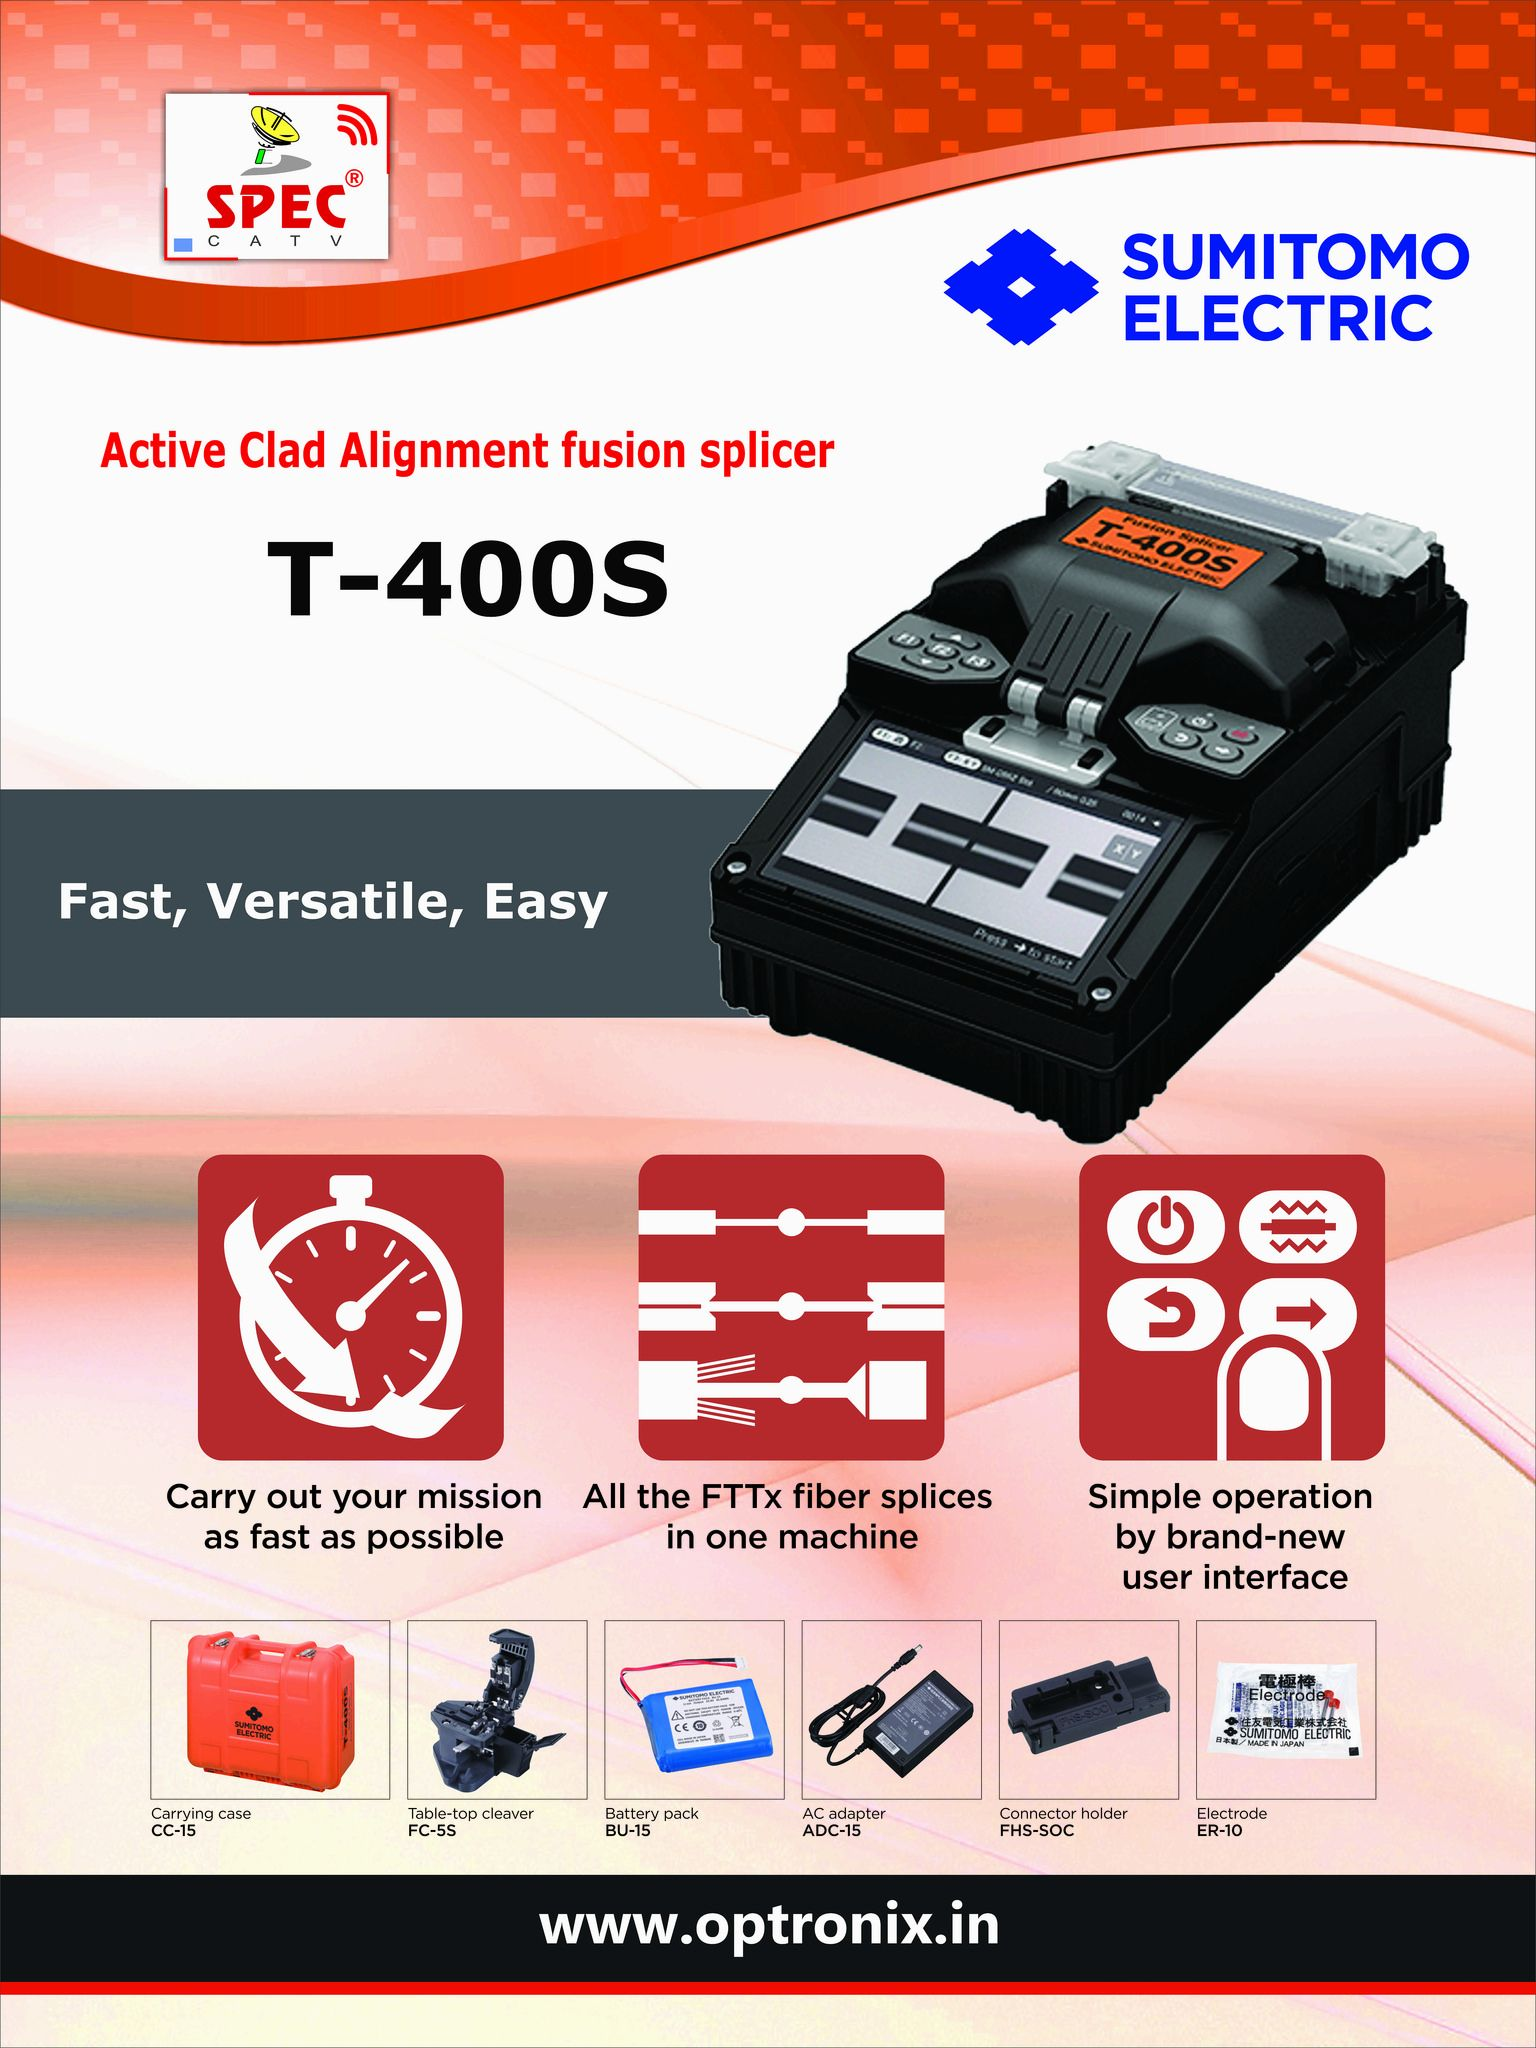 World Class brand T400S Fusion Splicer in India - Candid Optronix